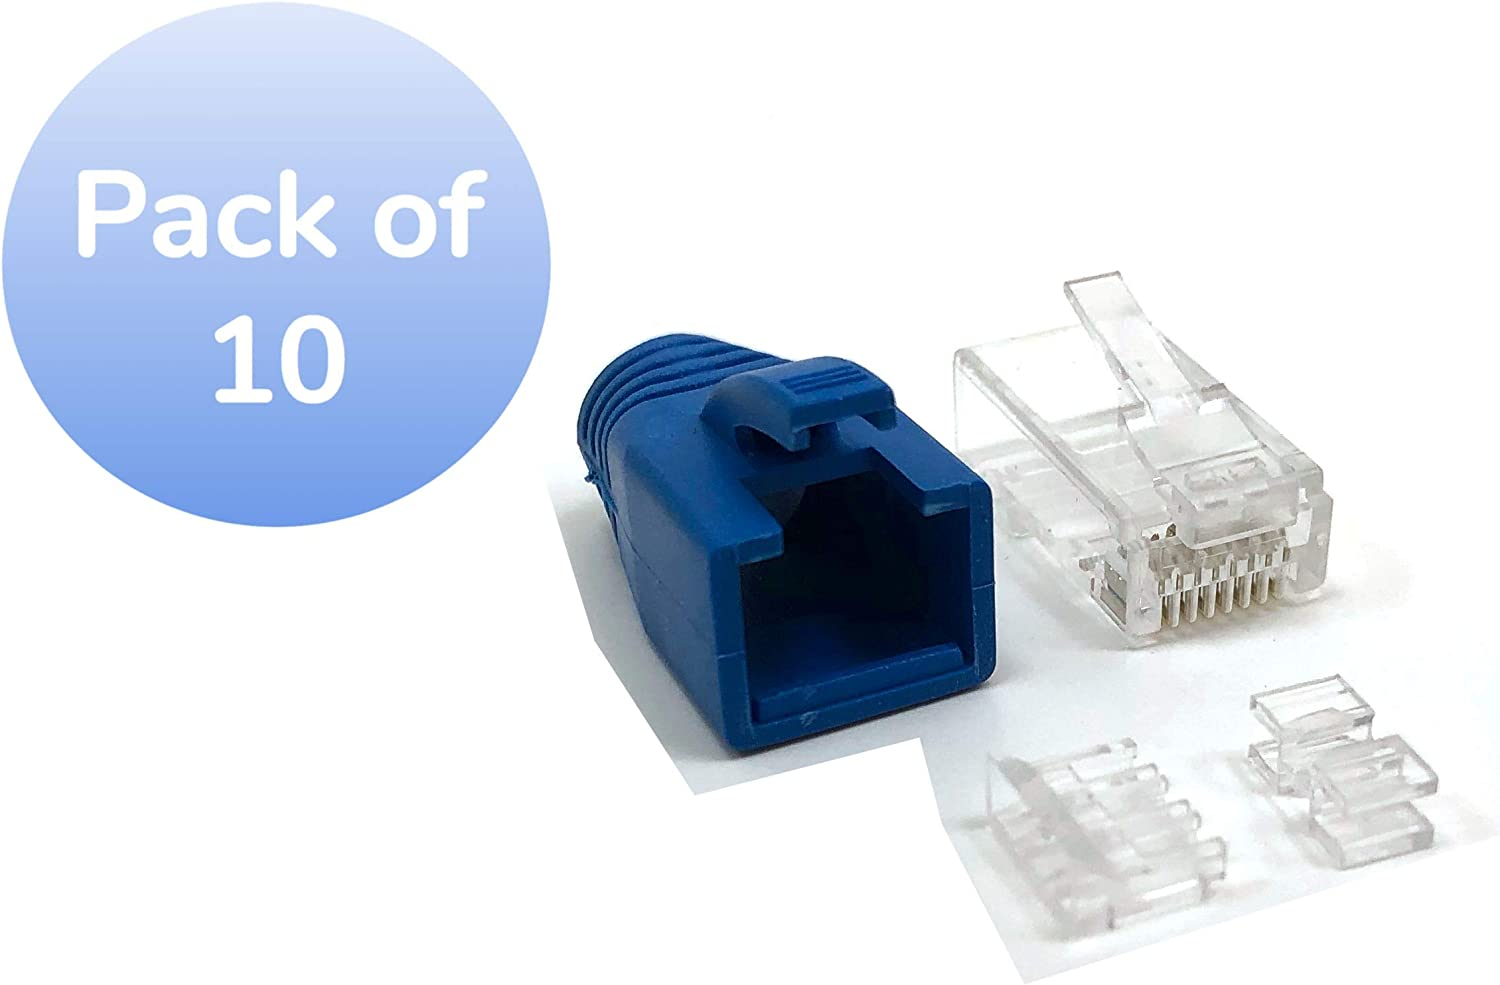 C20-088L6A-10 Pack of 10 Micro Connectors Cat 6A RJ45 Modular Connectors with Boots and Load Bar